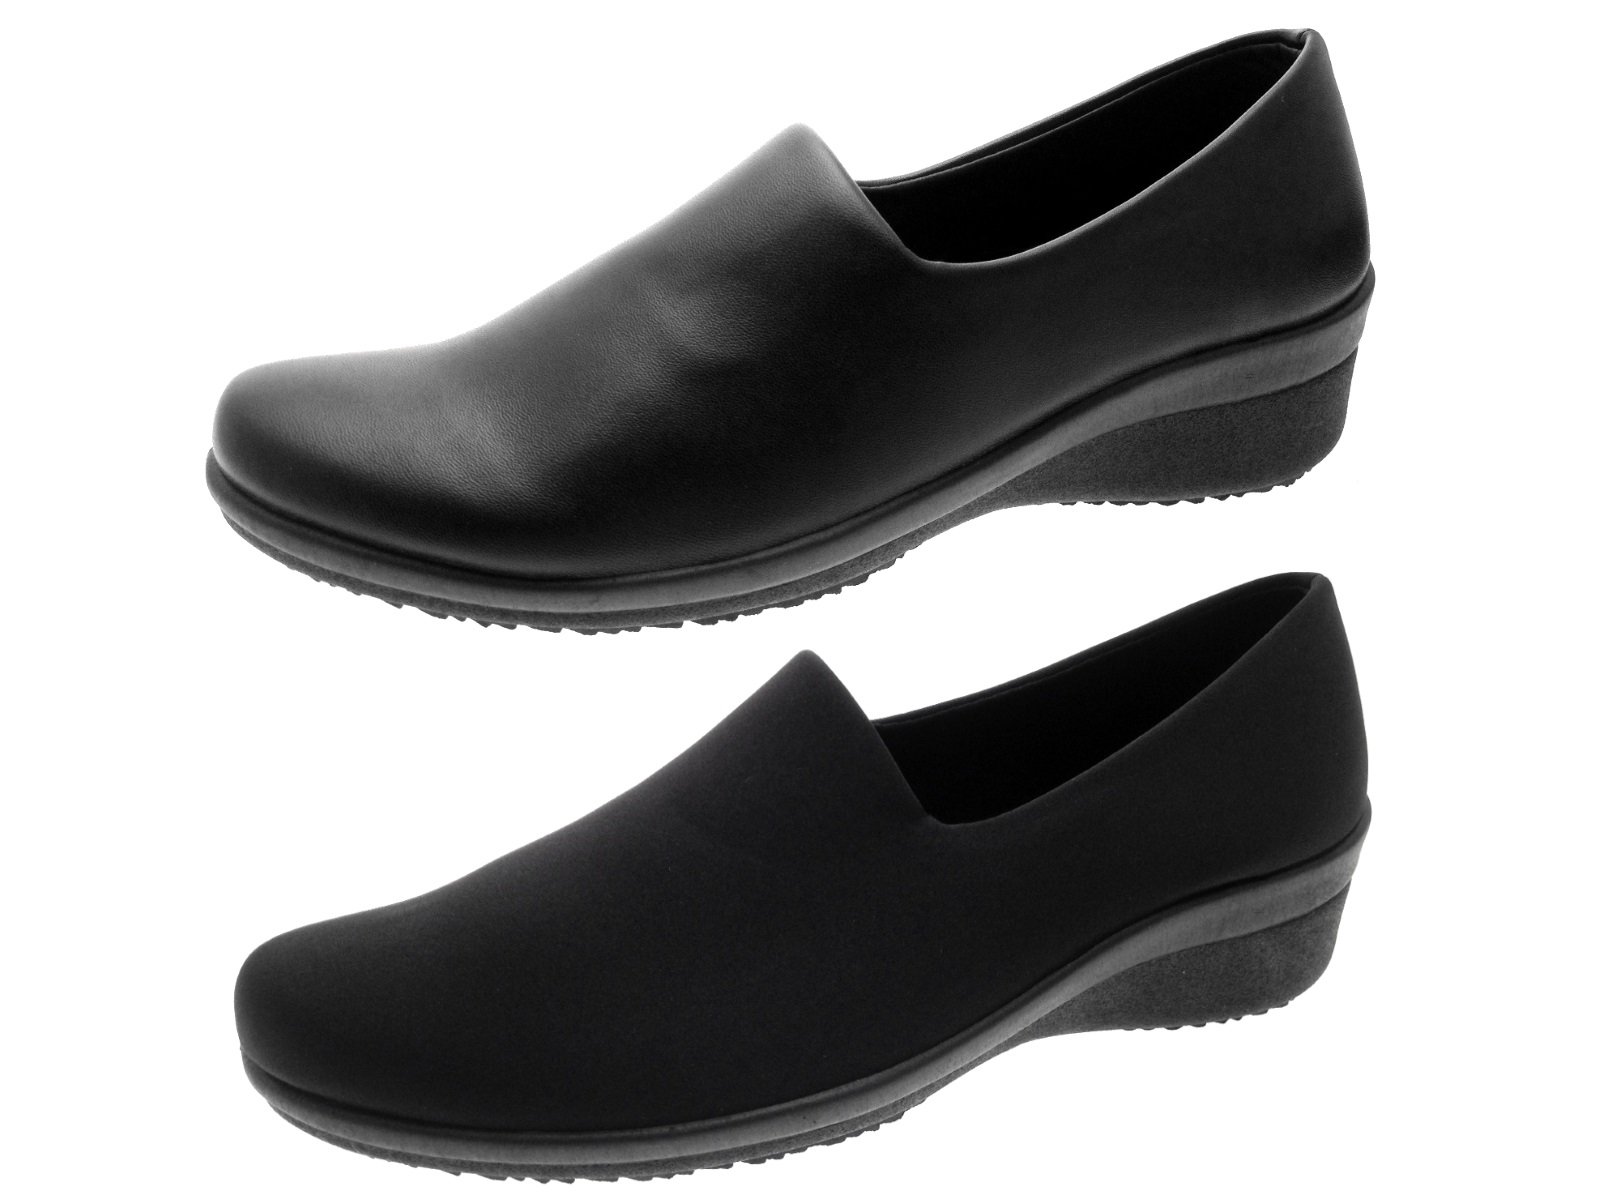 womens low wedges flexi stretch comfort work loafers slip